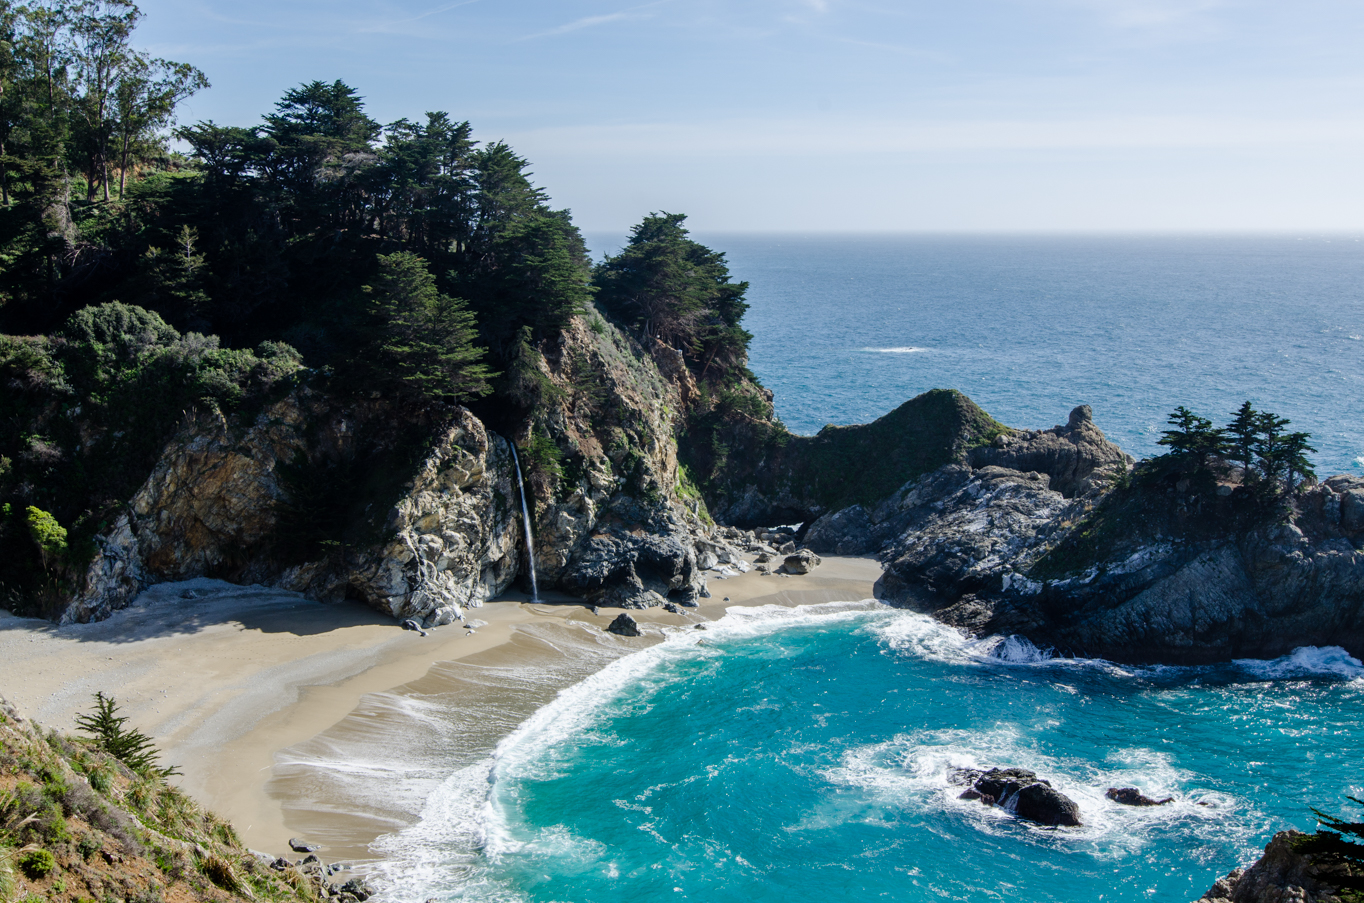 Pacific Coat Highway - McWay Falls